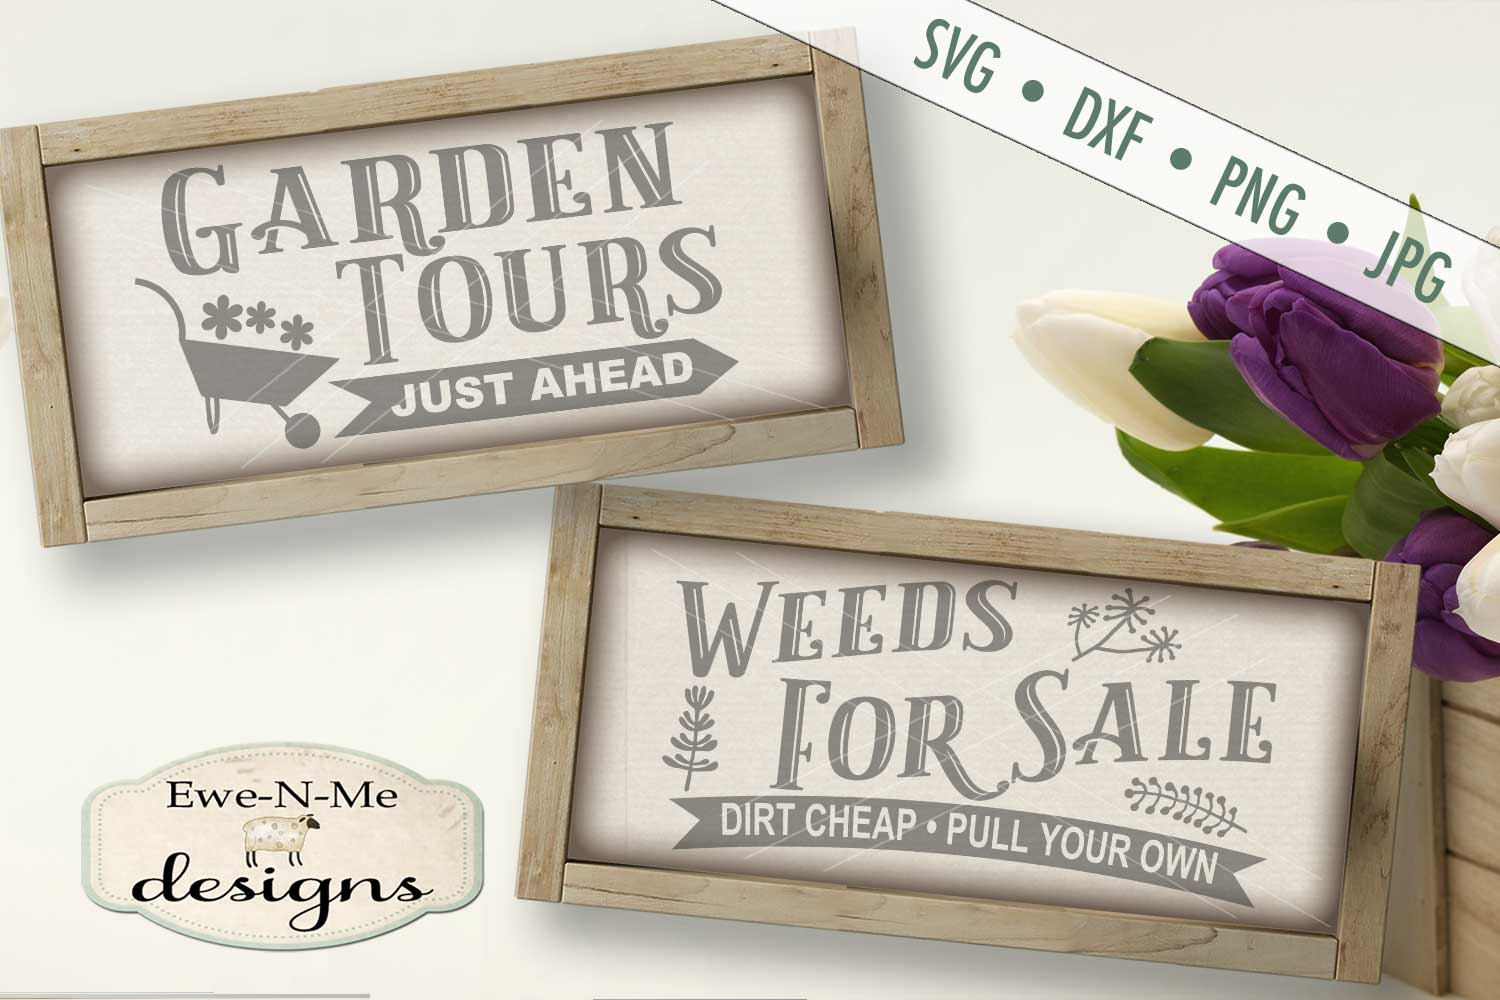 Garden Tours Weeds For Sale SVG DXF Files example image 1